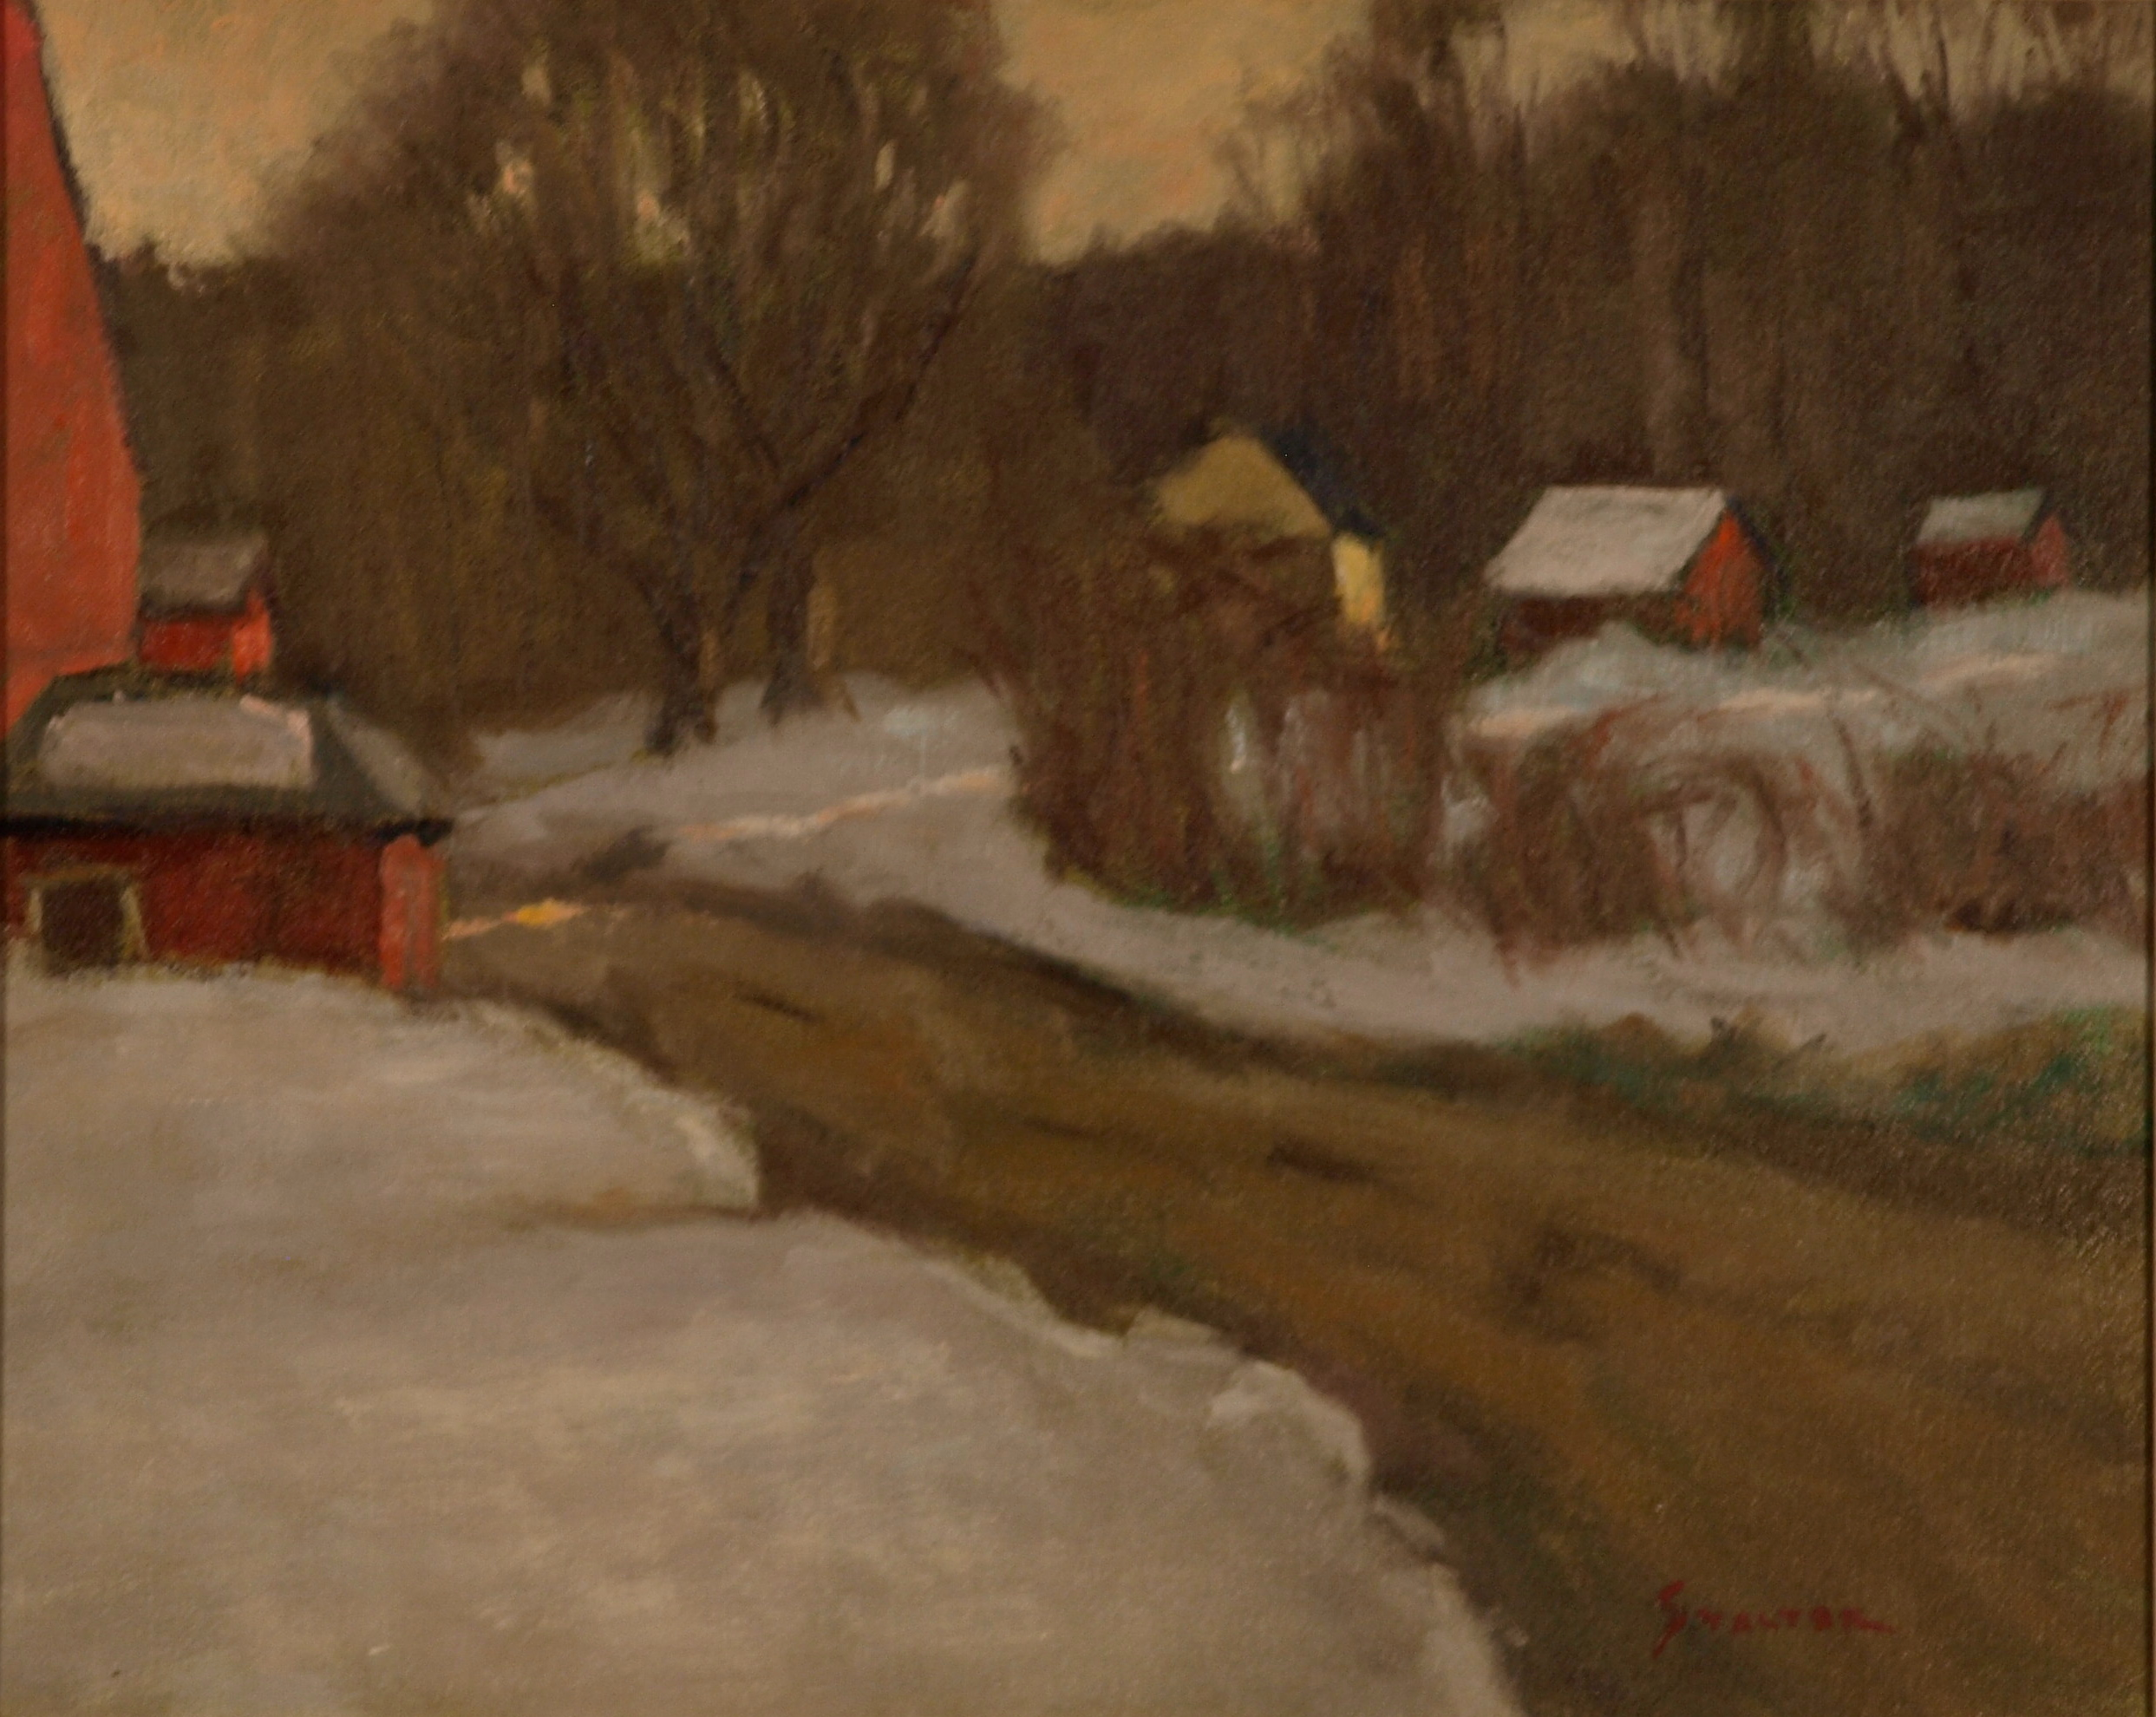 Late Snowy Afternoon - Newton's, Oil on Canvas, 16 x 20 Inches, by Richard Stalter, $450